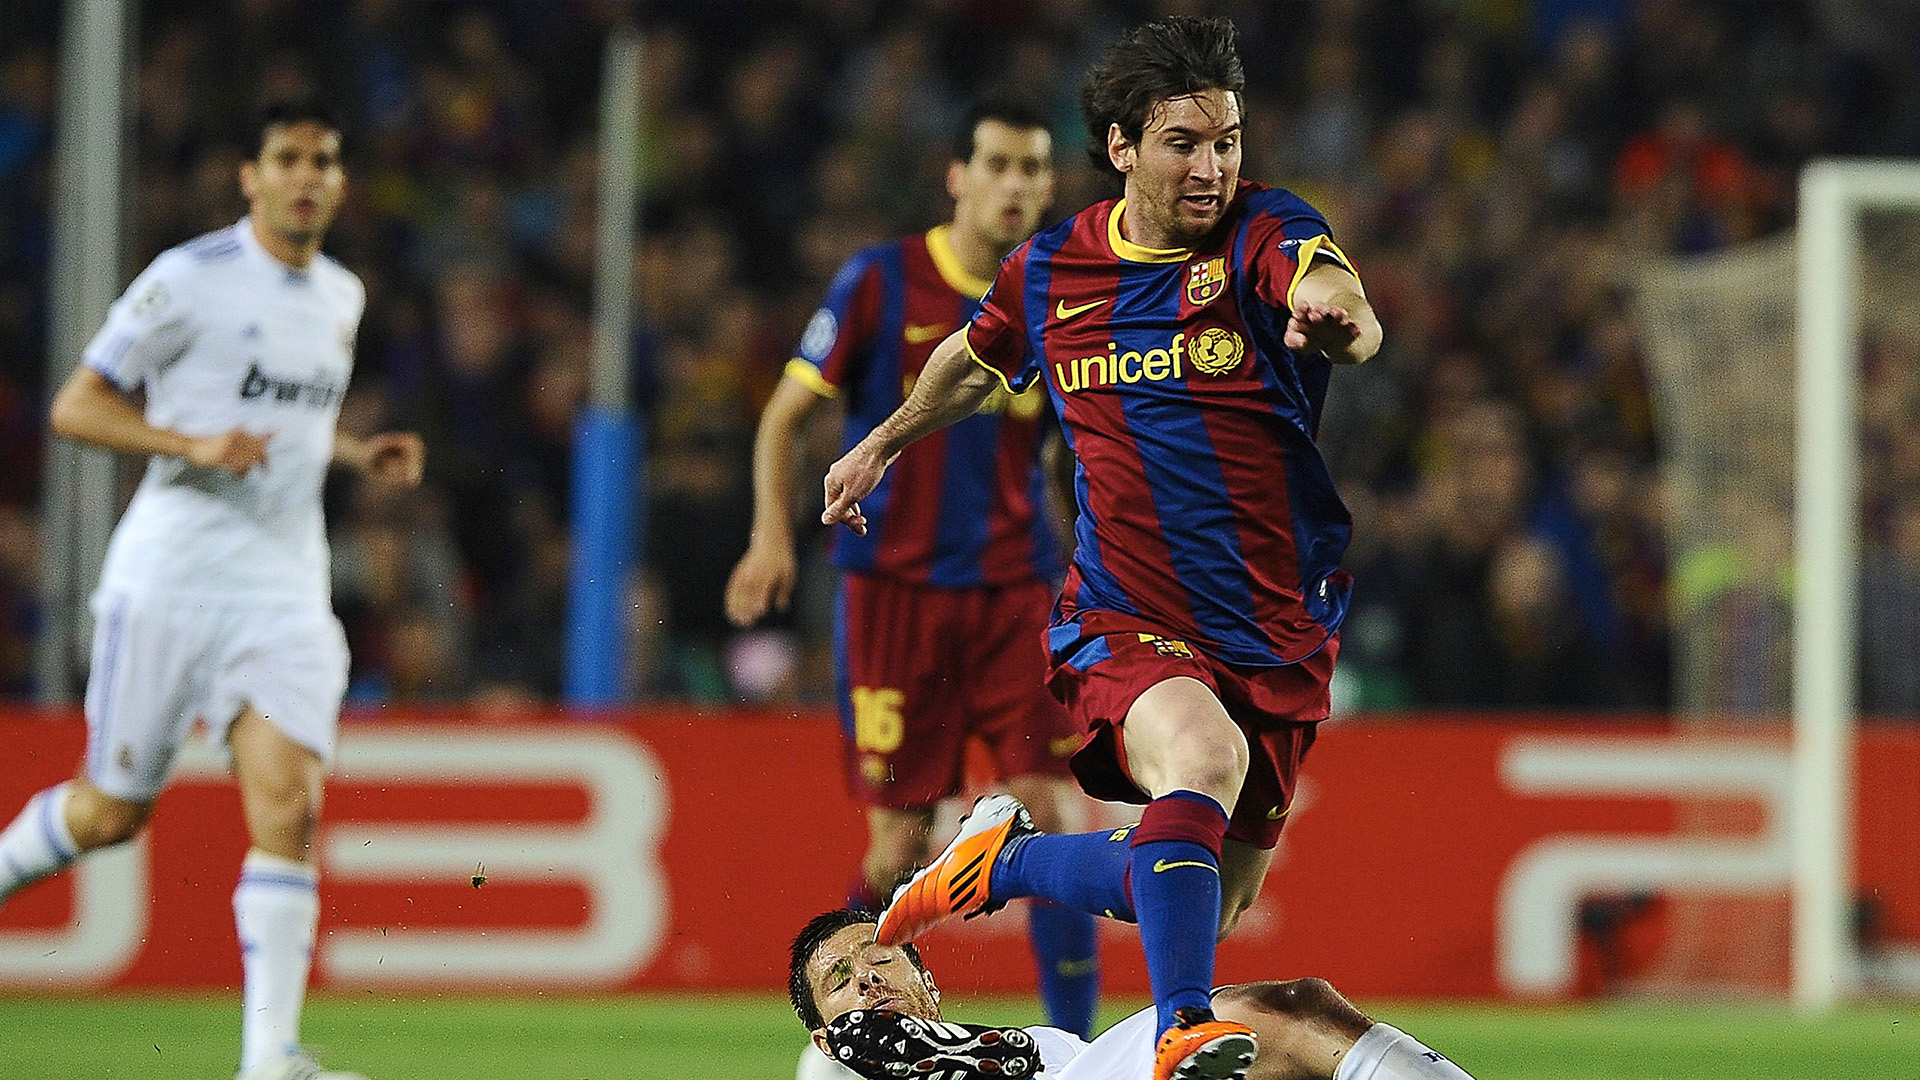 Messi rides a Xabi Alonso challenge